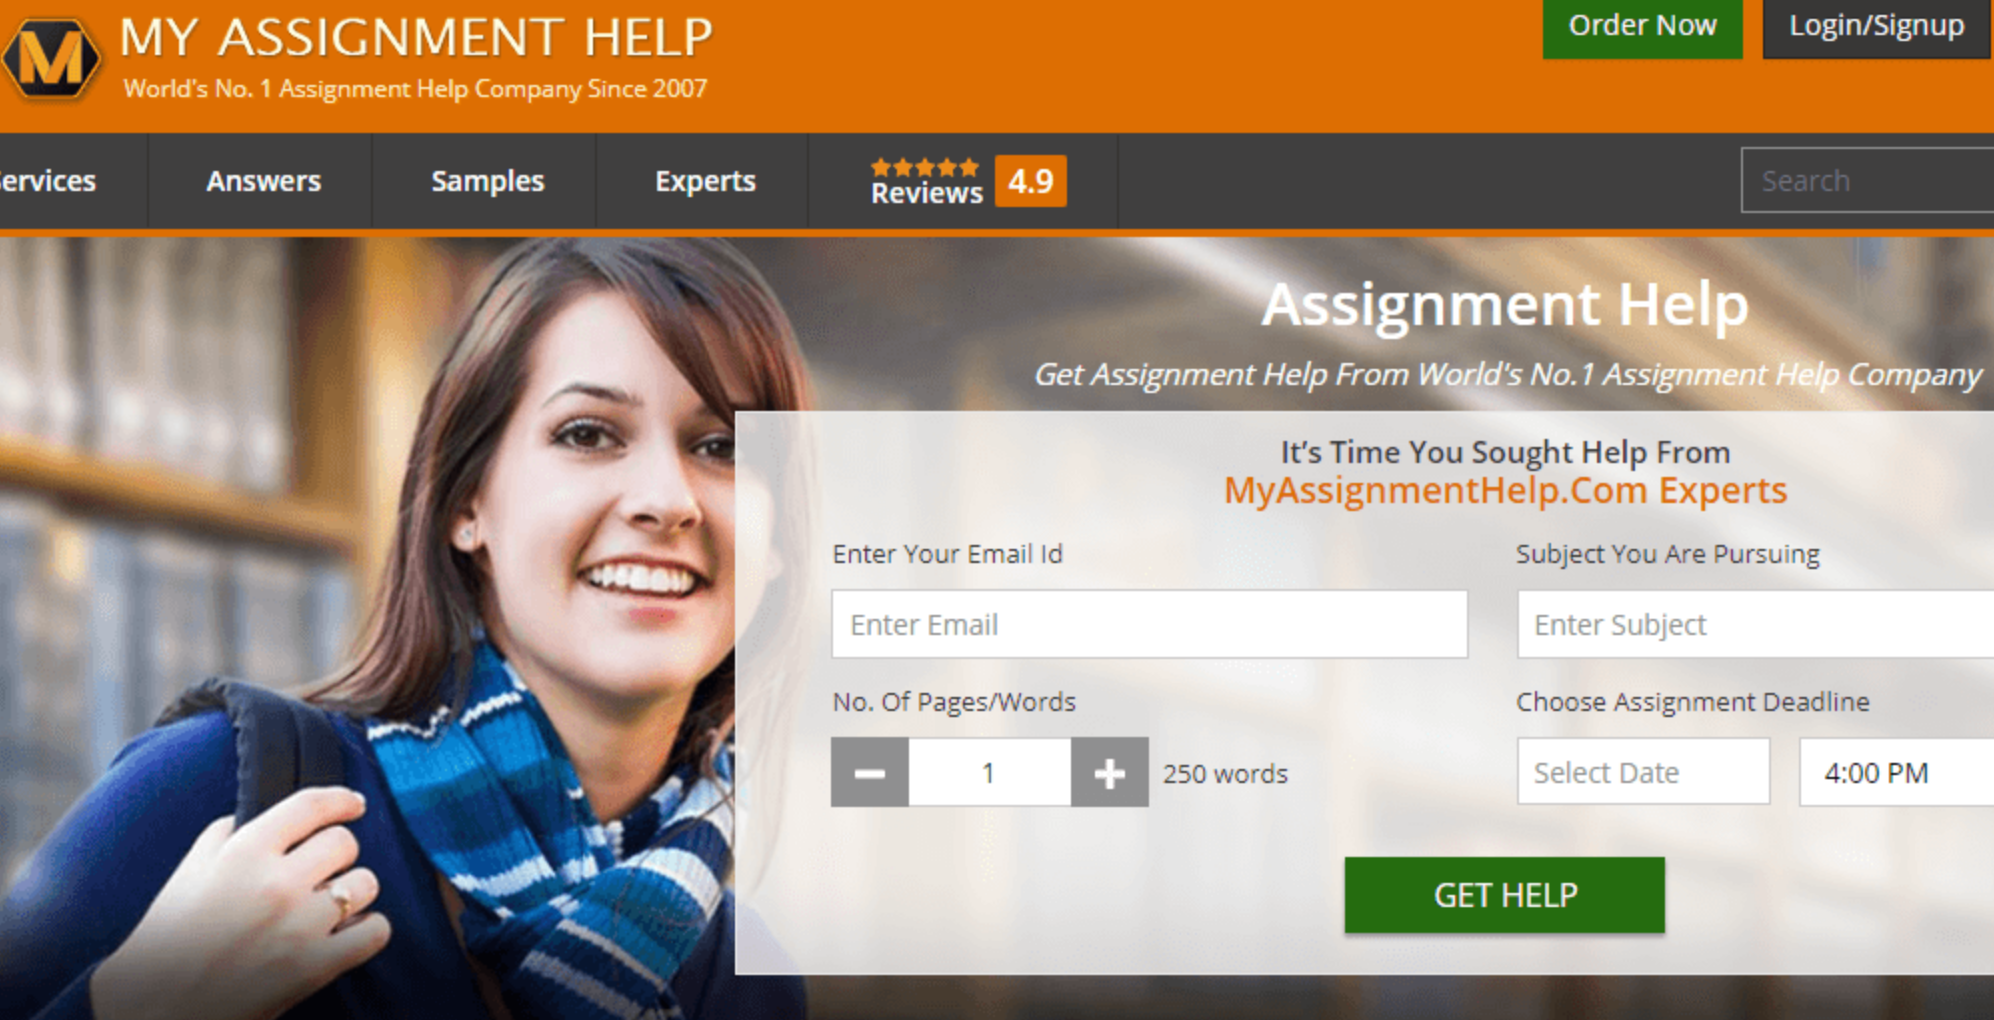 myassignmenthelp review